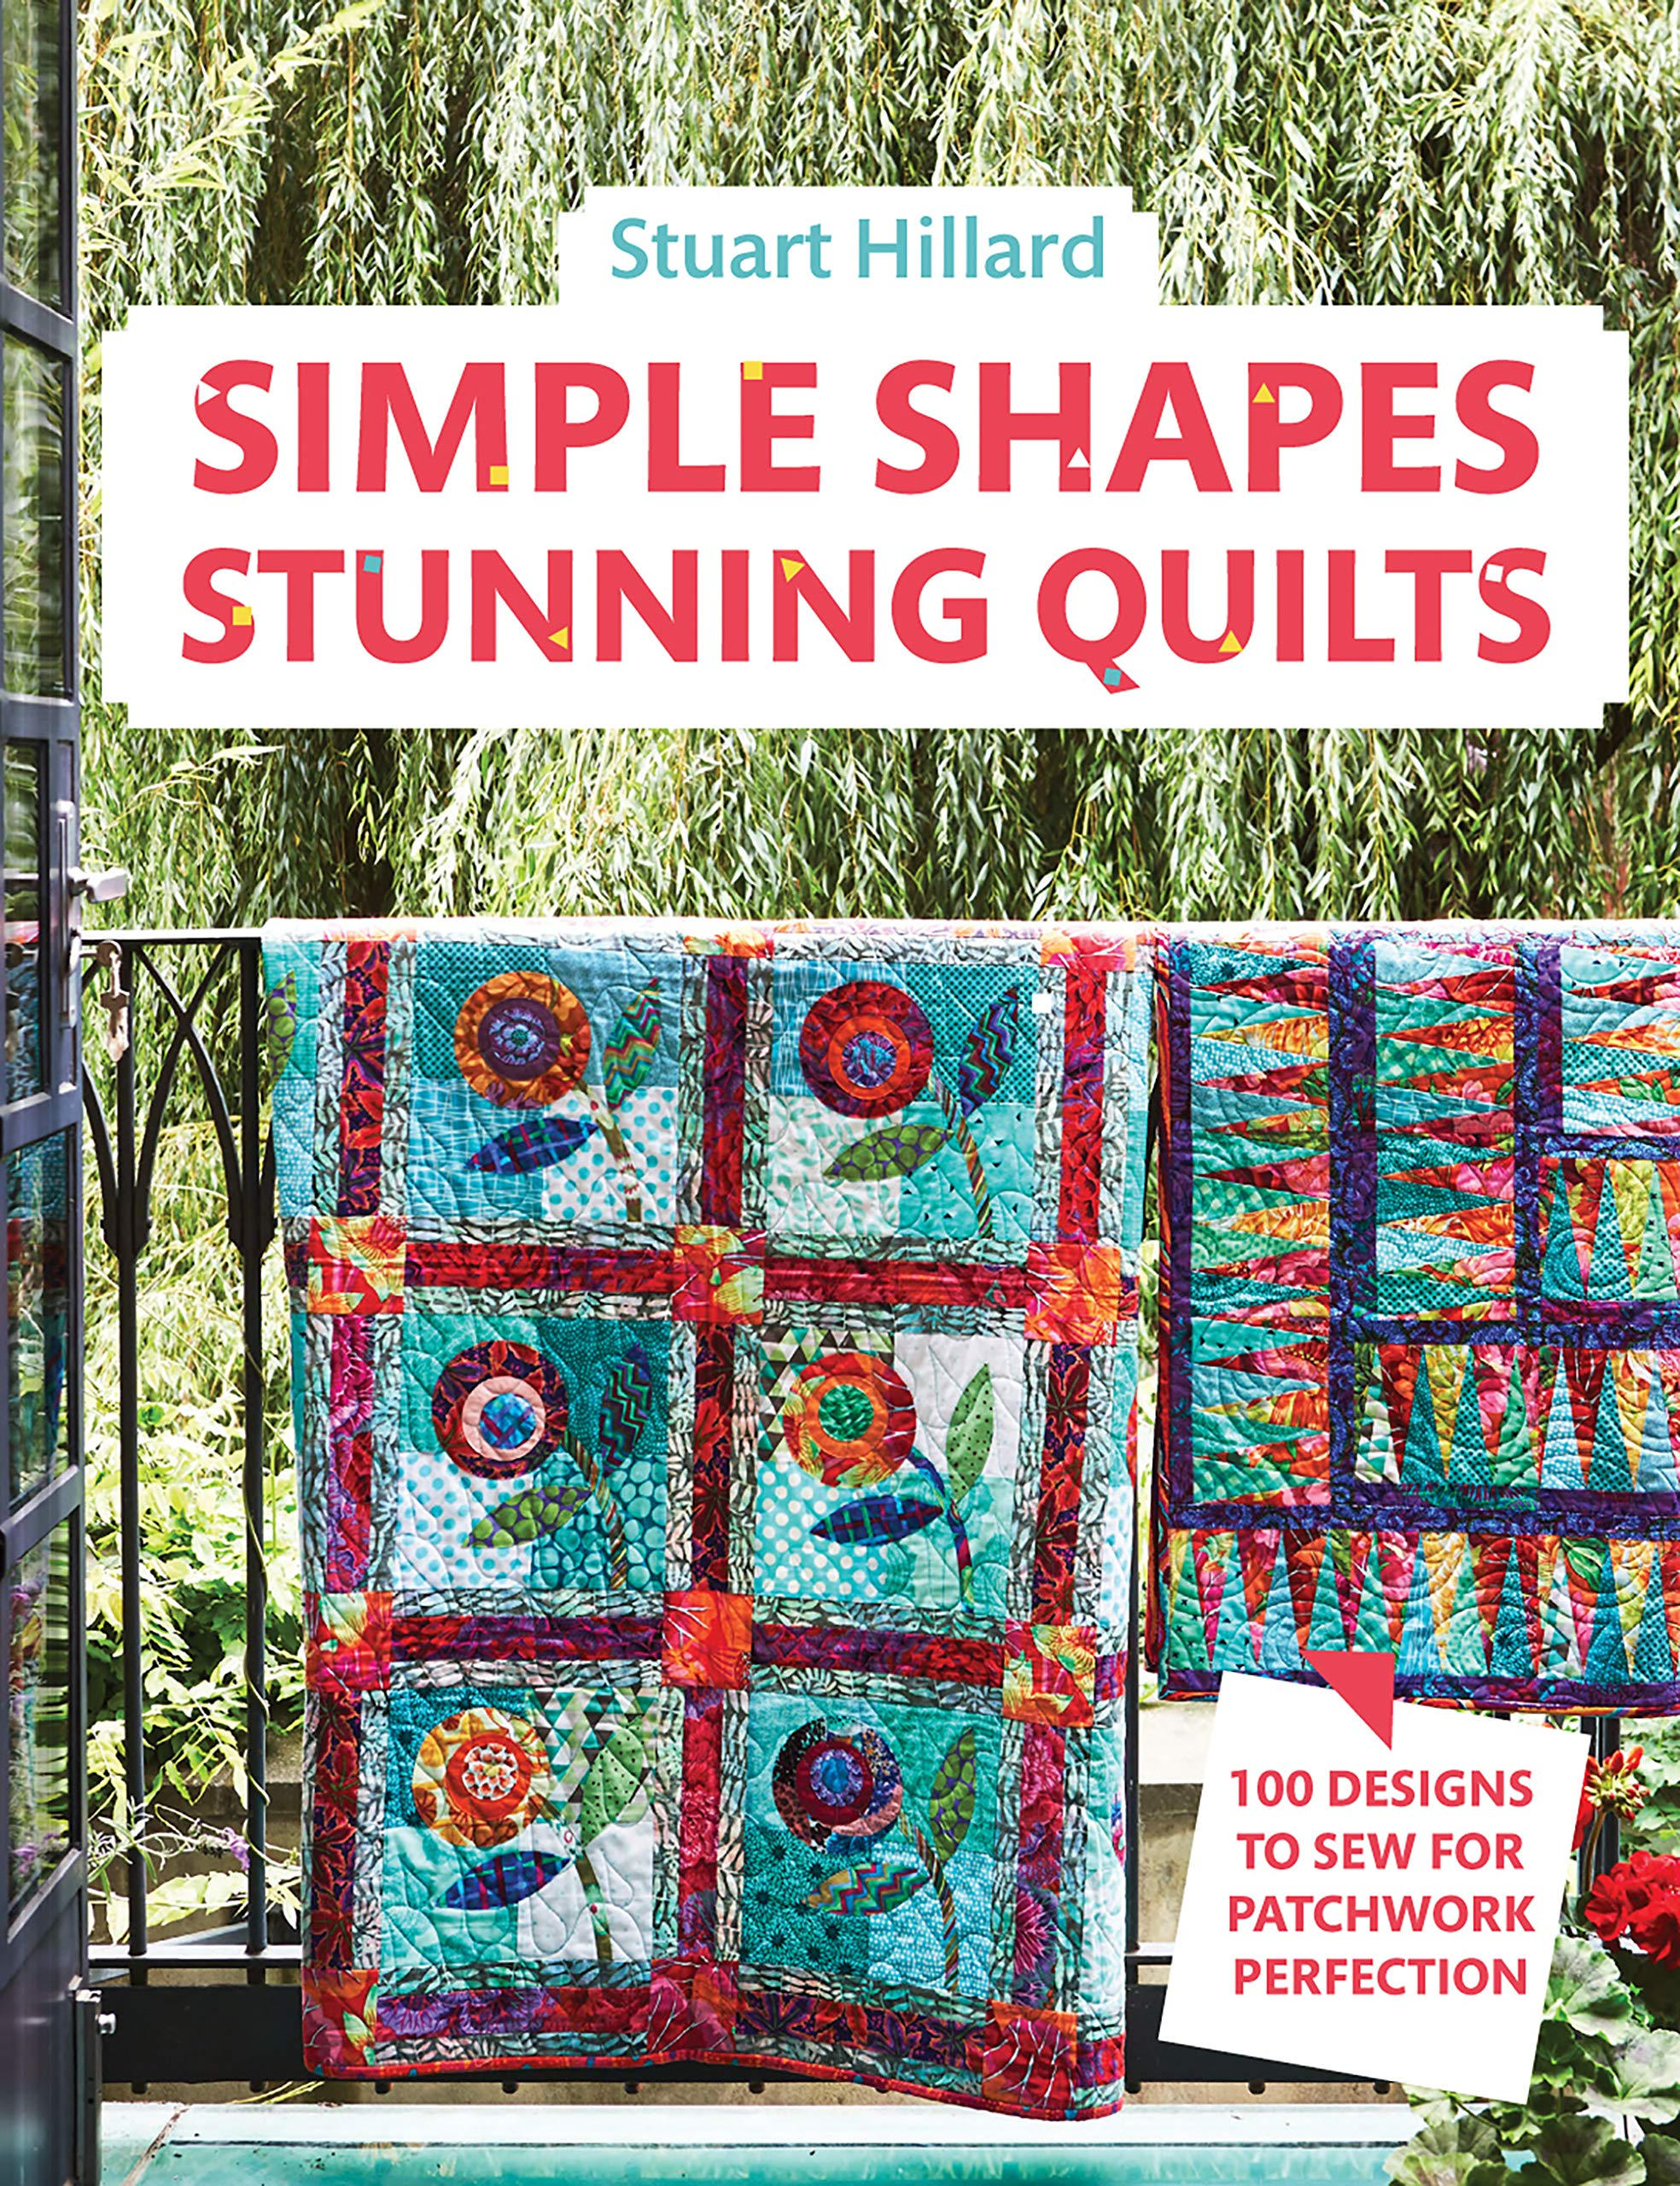 Simple Shapes Stunning Quilts  100 Designs To Sew For Patchwork Perfection